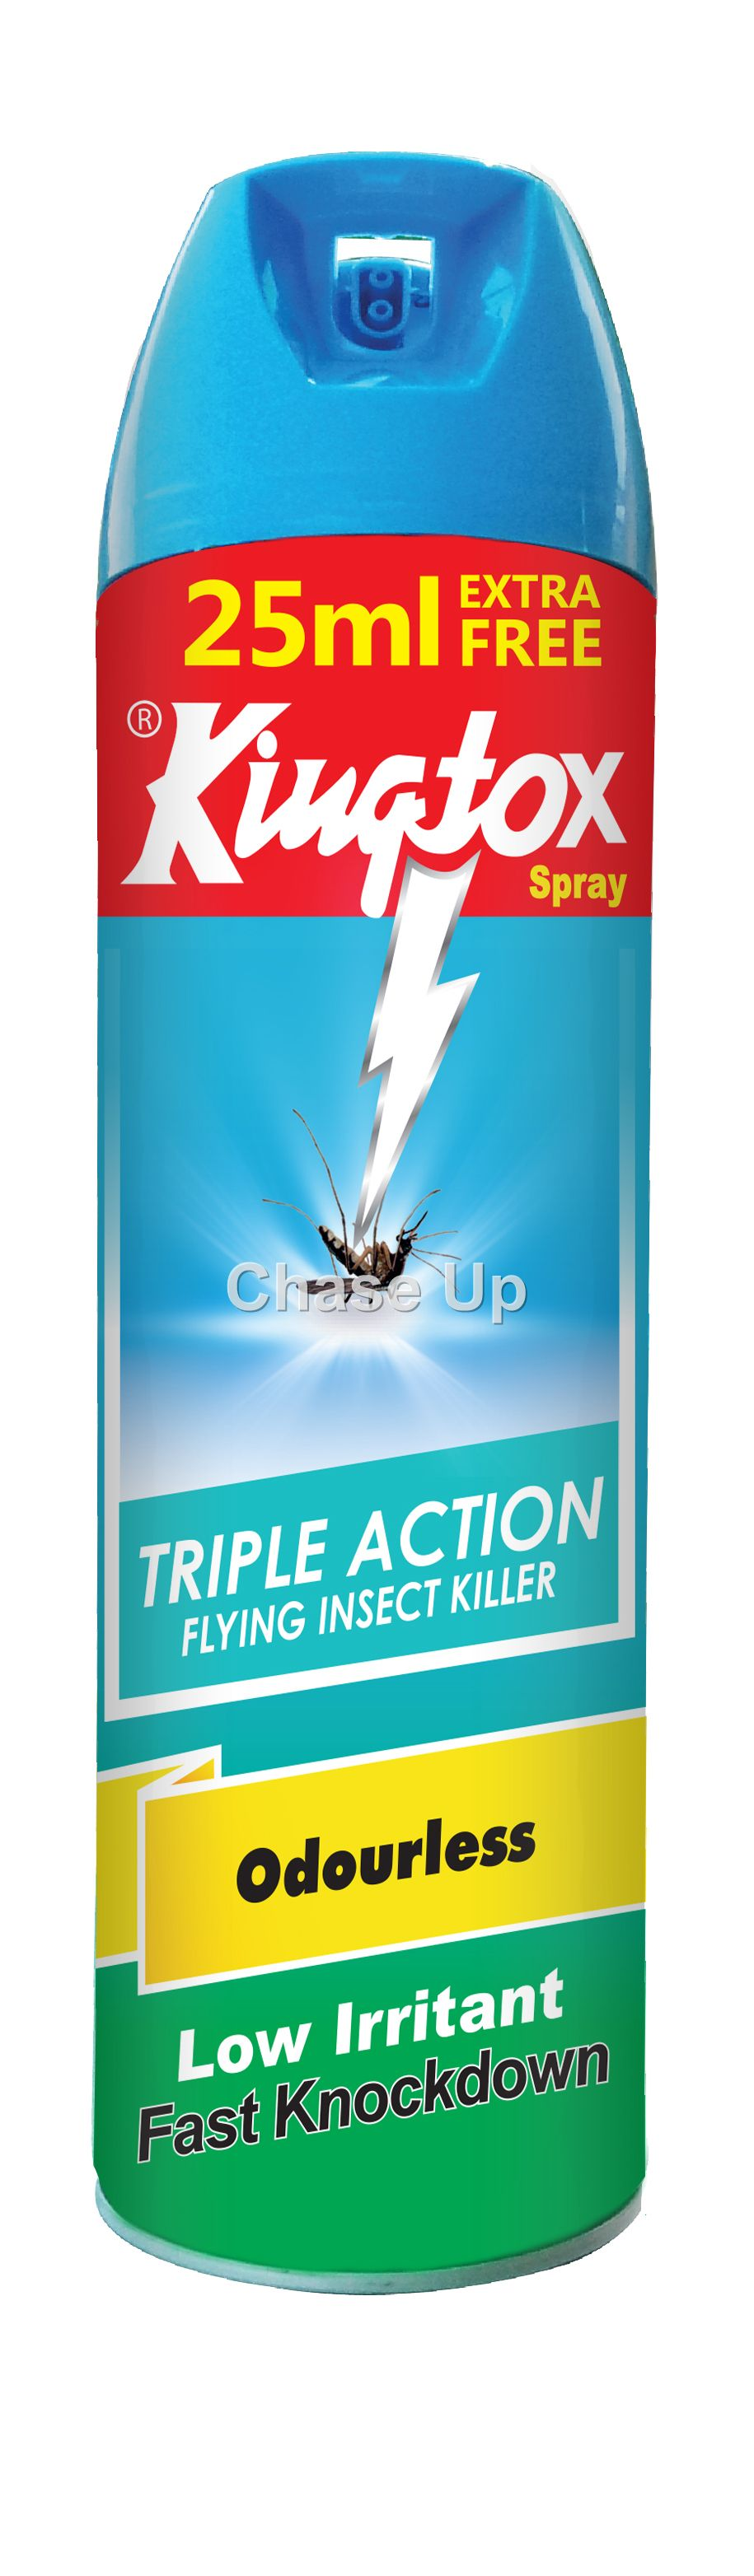 KingTox Odourless Fly & Insect Killer Spray 300ml